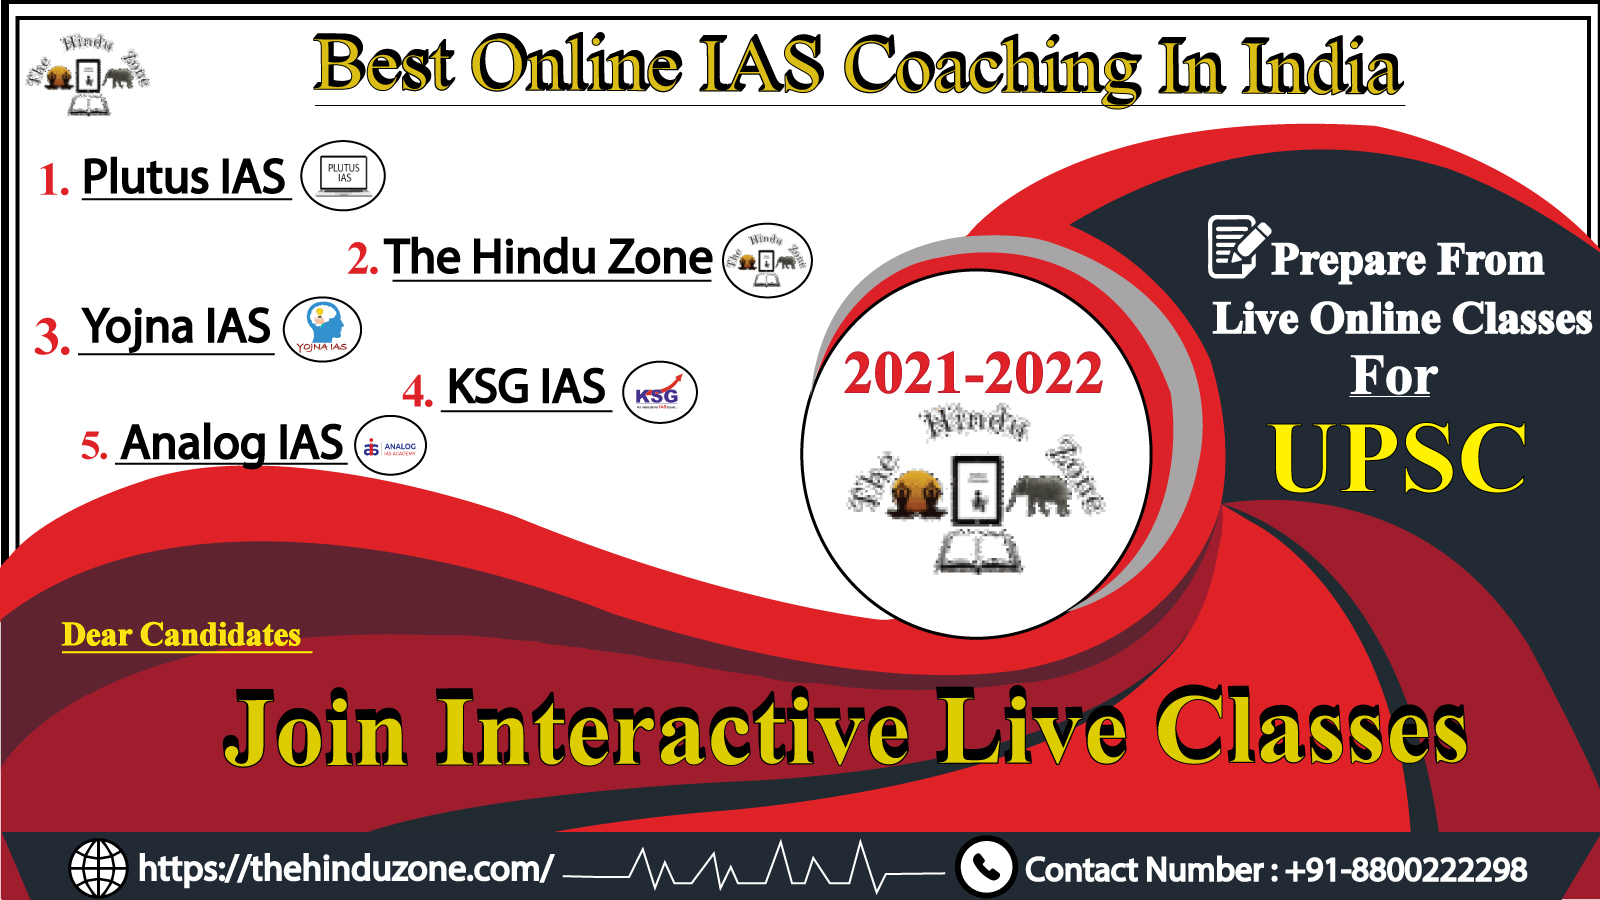 Best Online ias coaching in India